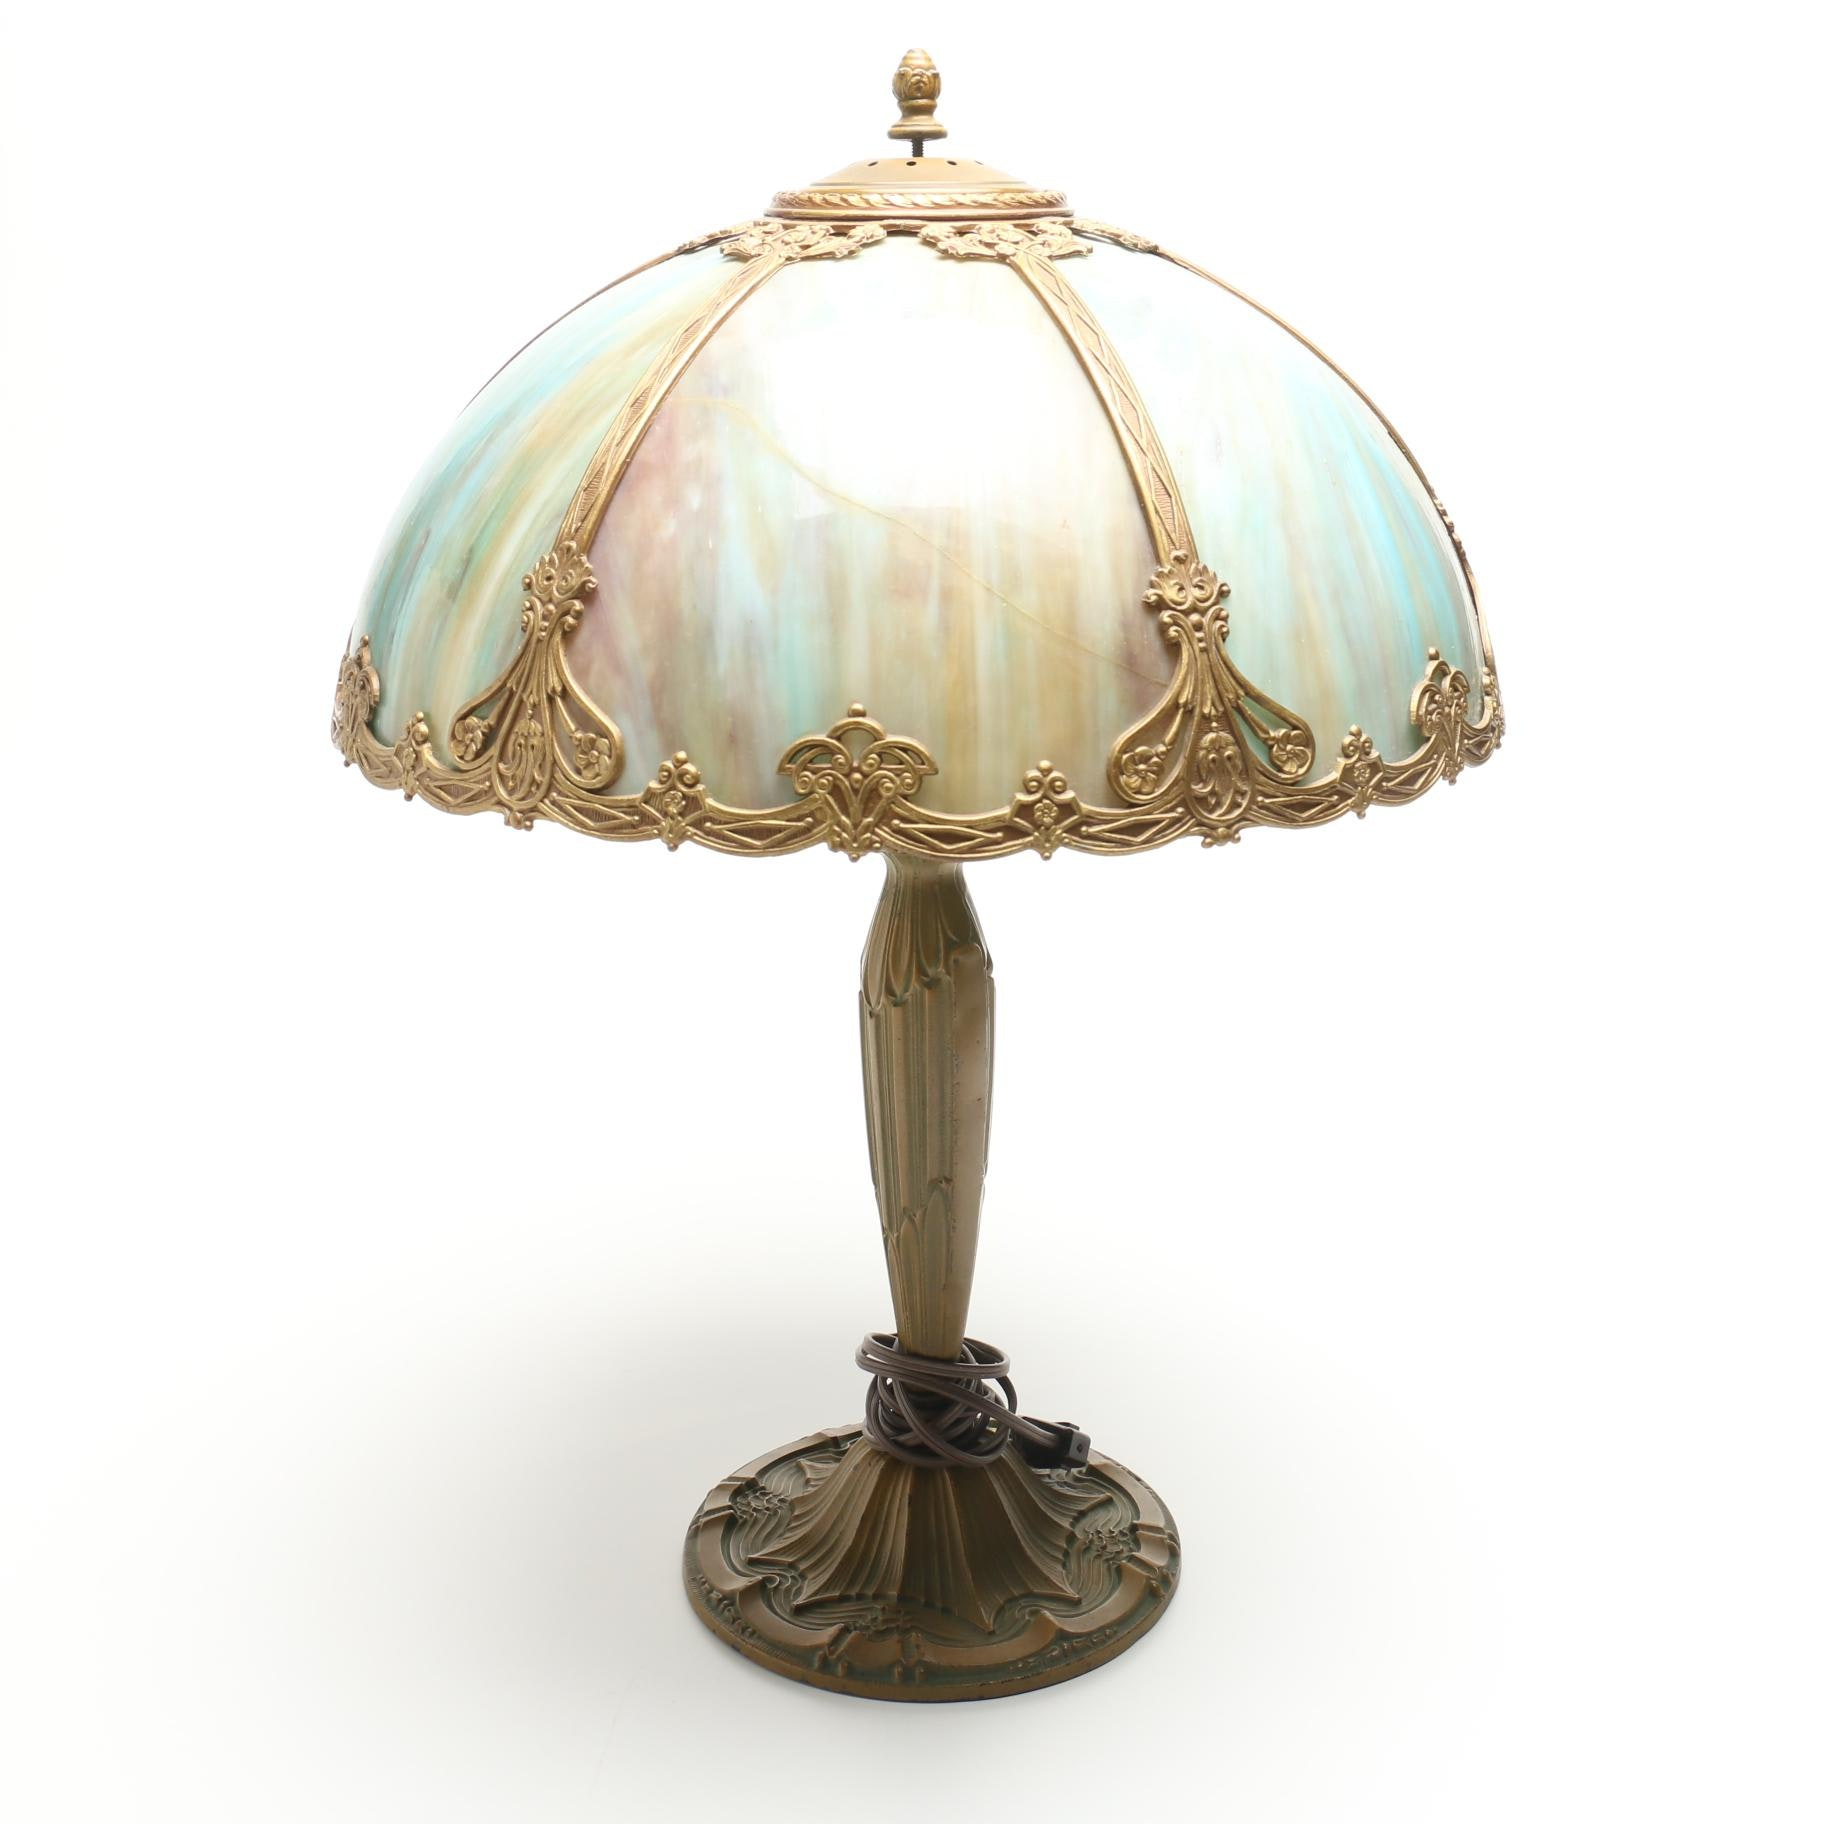 Vintage Slag Glass Table Lamp with Reticulated Overlay